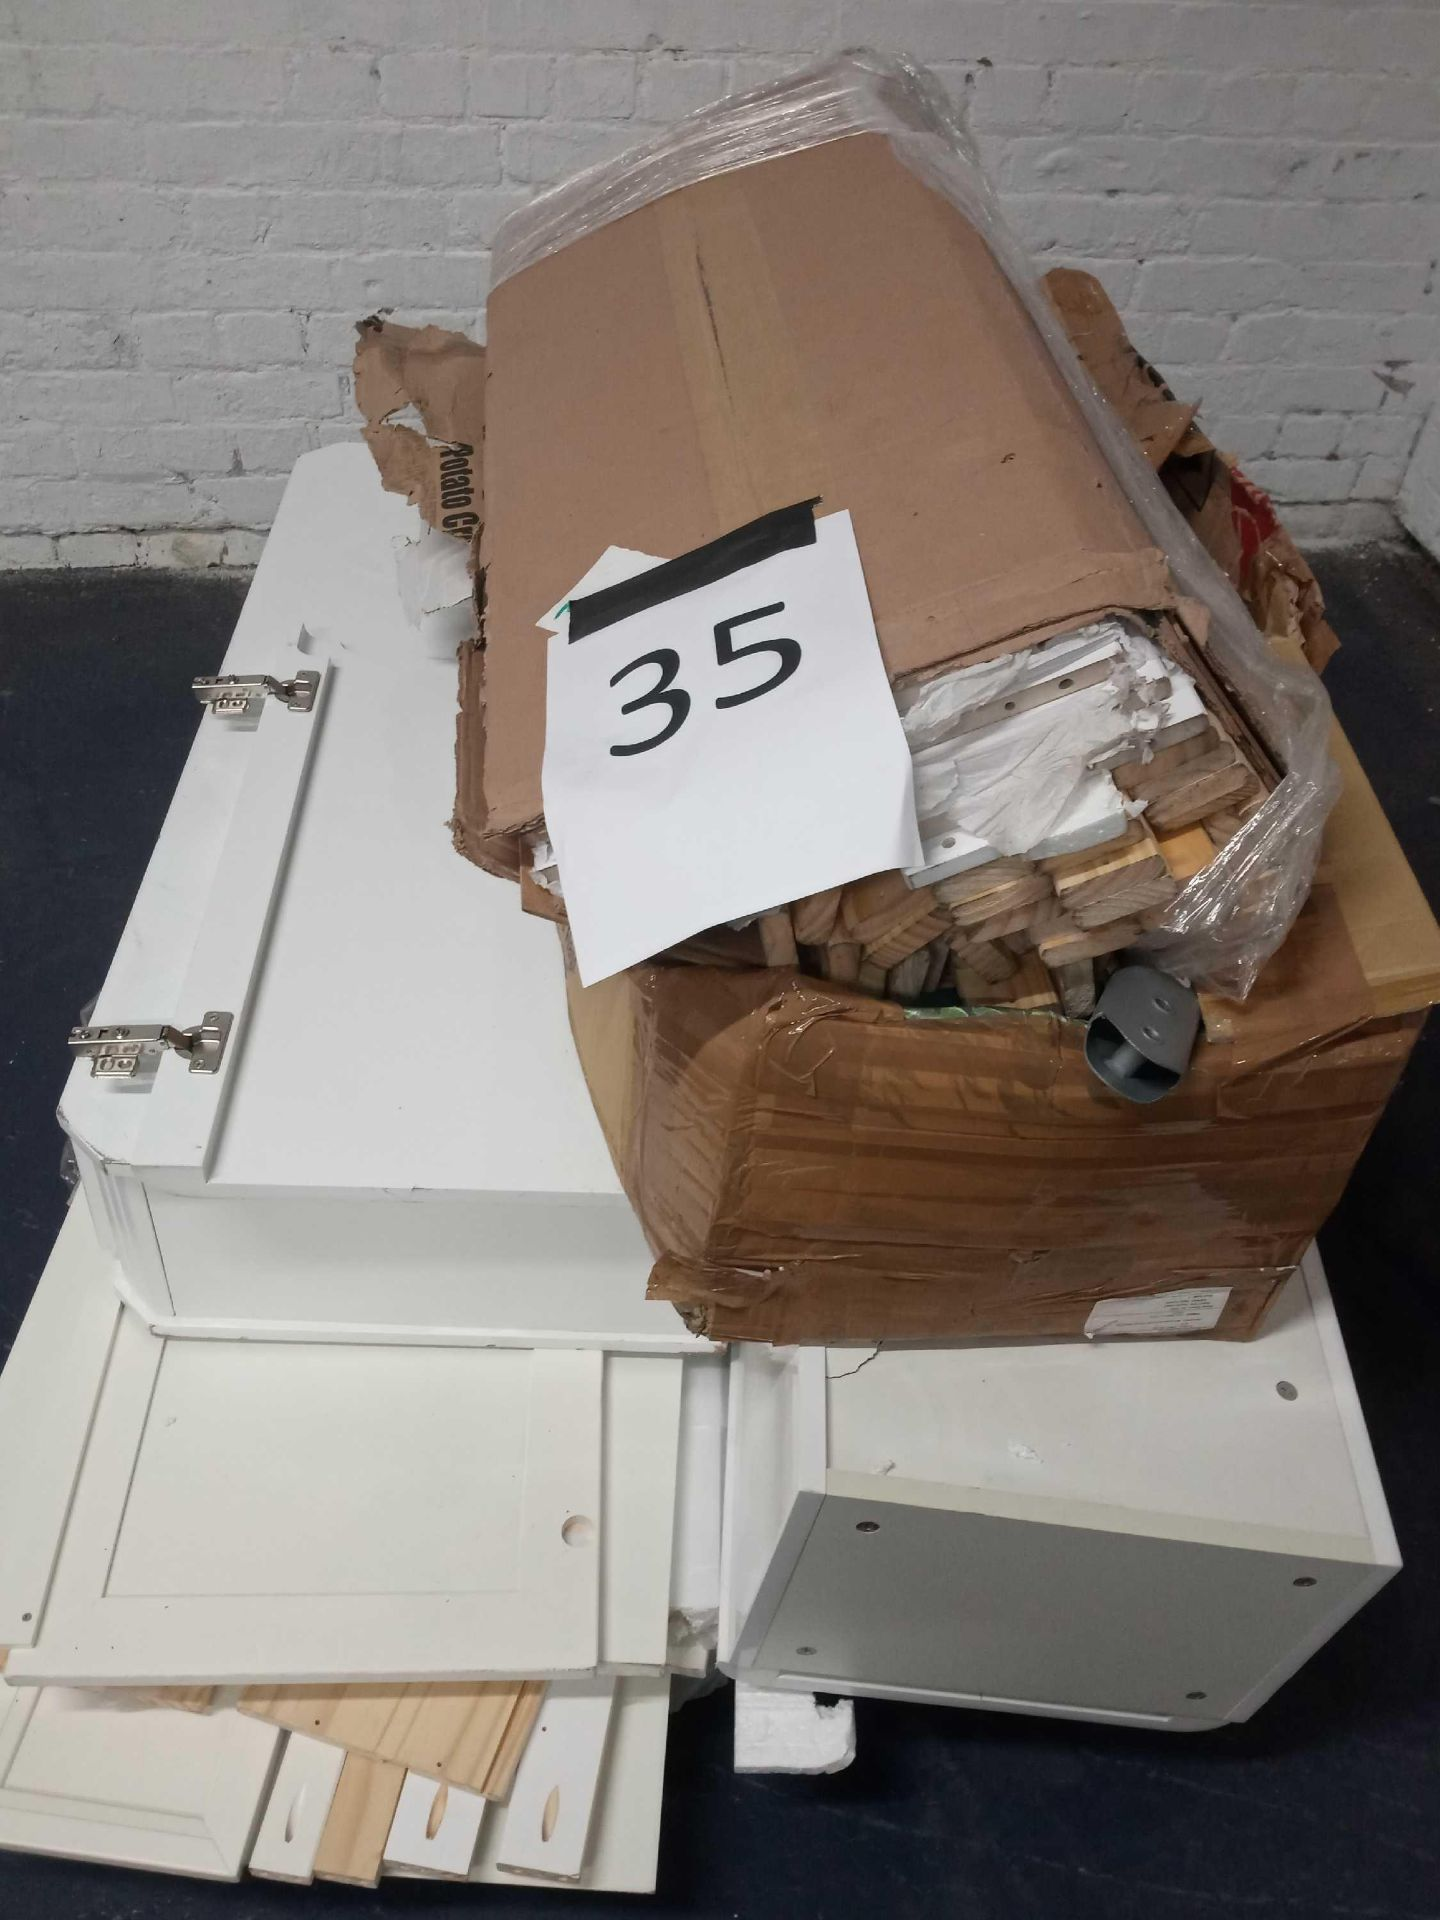 Pallet To Contain A Assortment Of Items To Include White Gloss Part Lots, Bunk Bed Part Lots, And